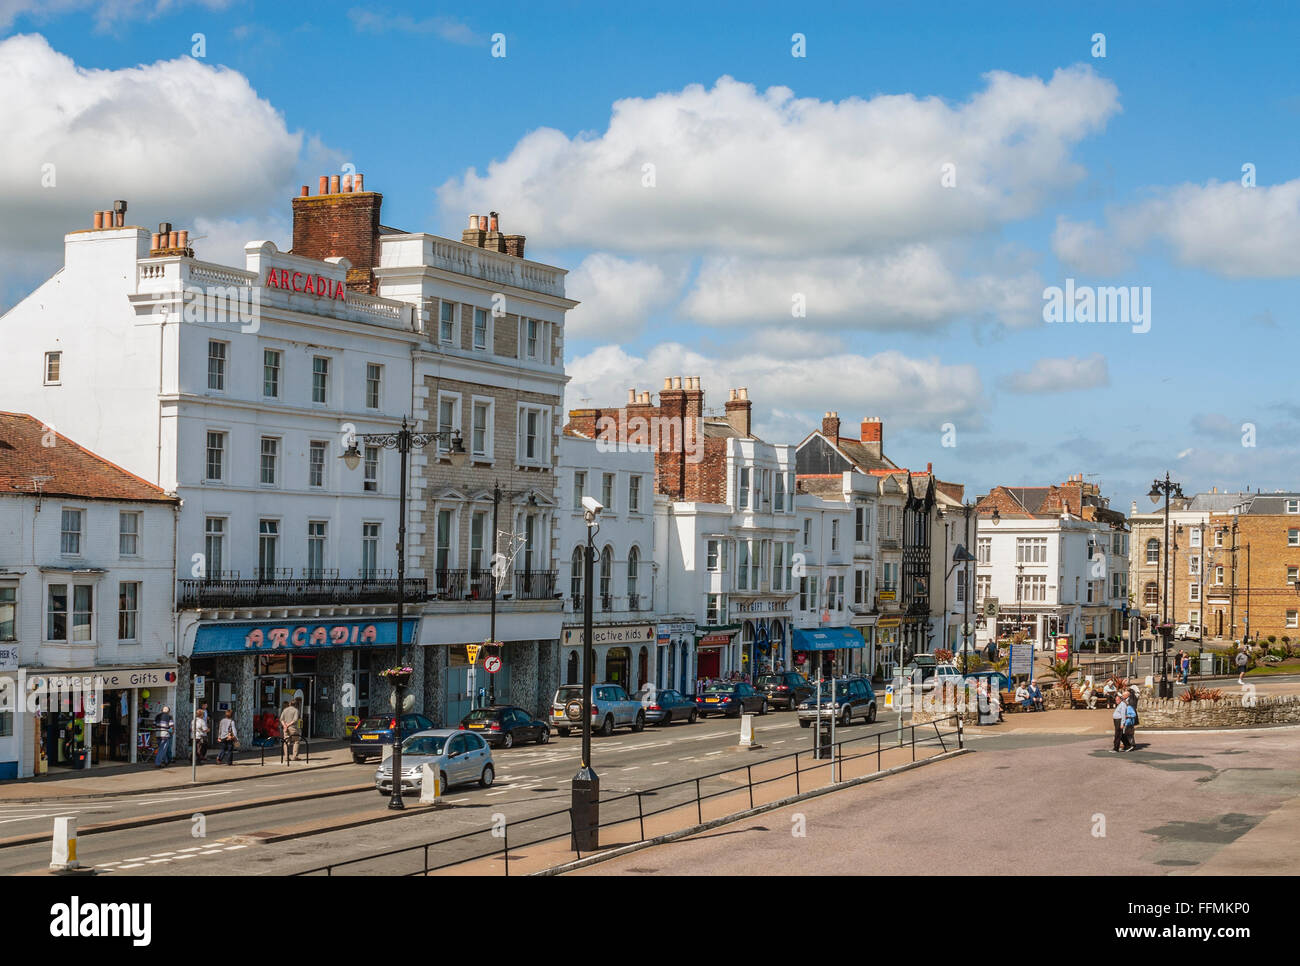 Harbour street of Ryde on the Isle of Wight, South England. | Die Hafenstrasse von Ryde auf der Isle of Wight, England. - Stock Image